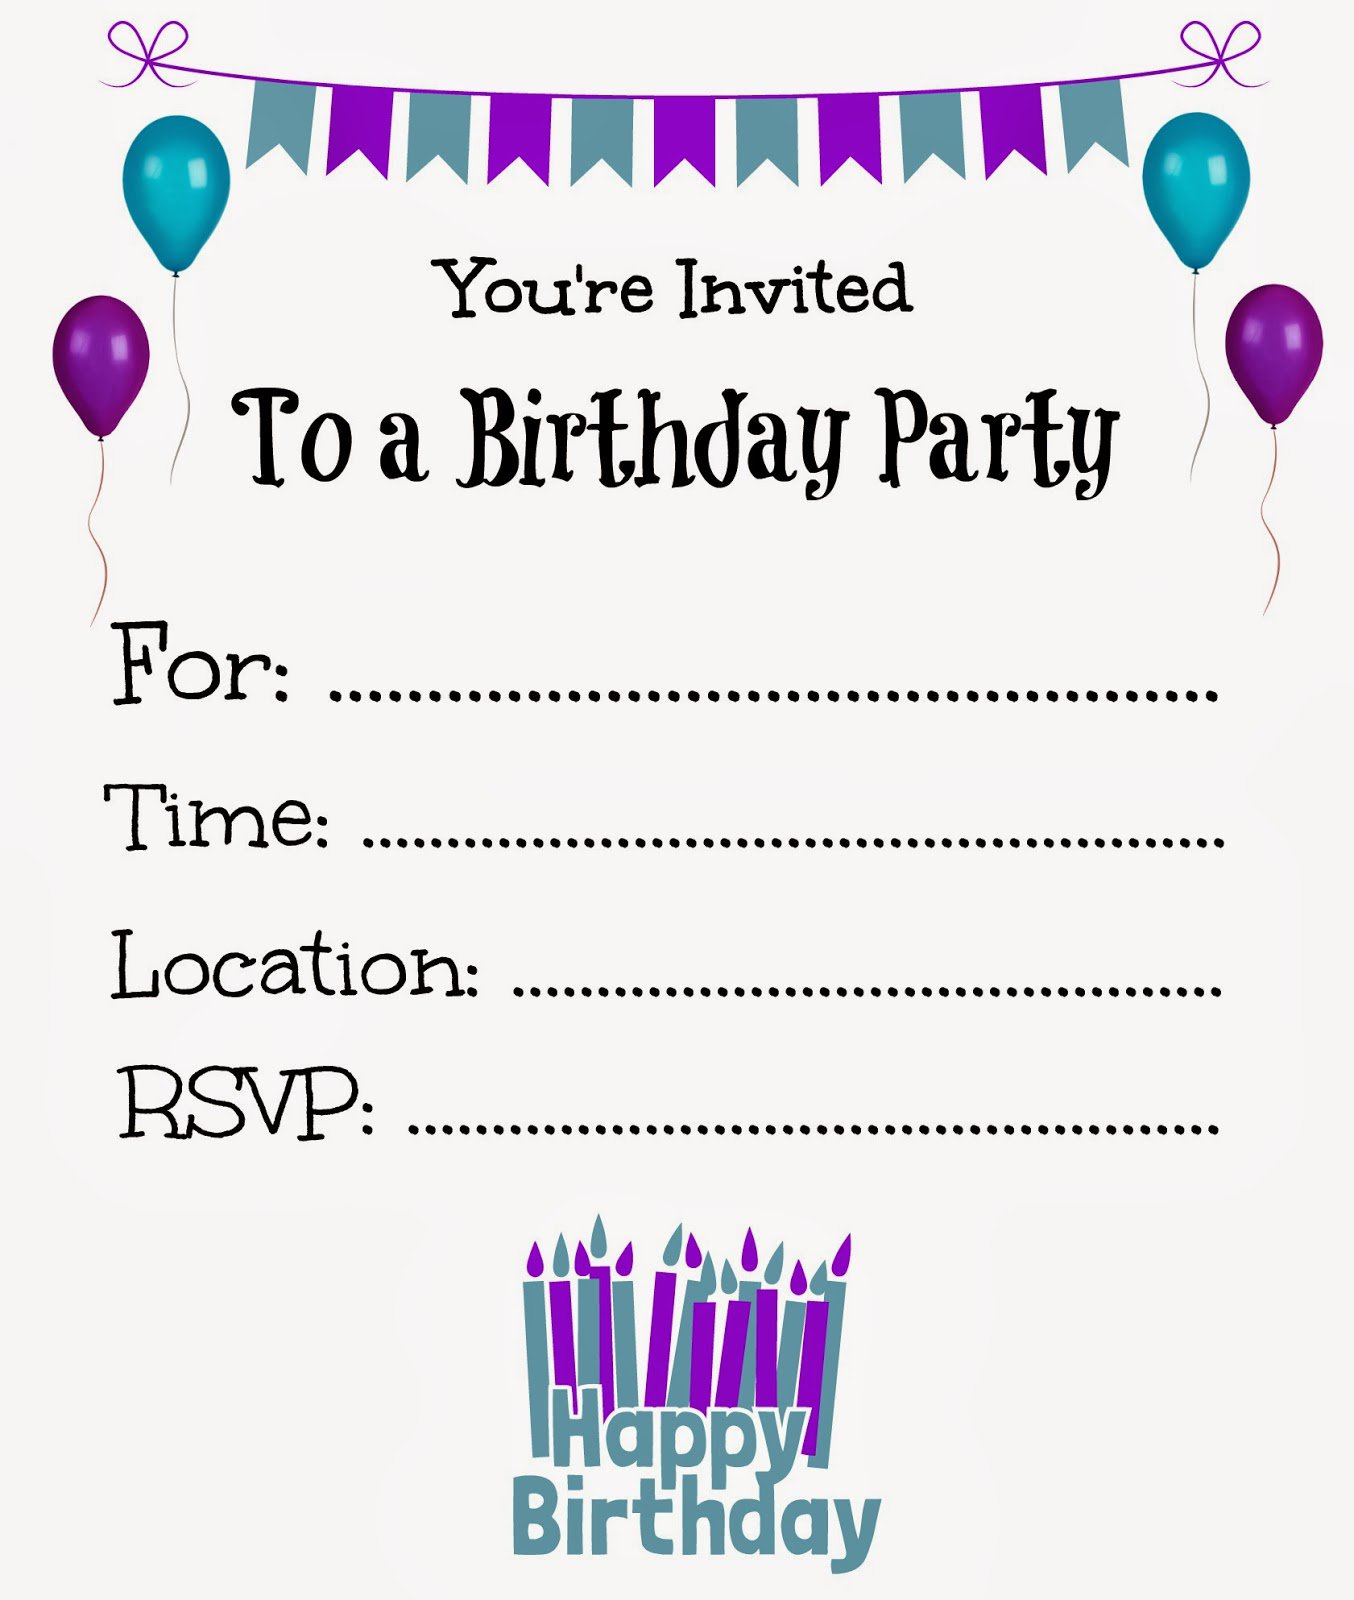 Free Printable Party Invites Templates Free Birthday Invitations - Make Printable Party Invitations Online Free